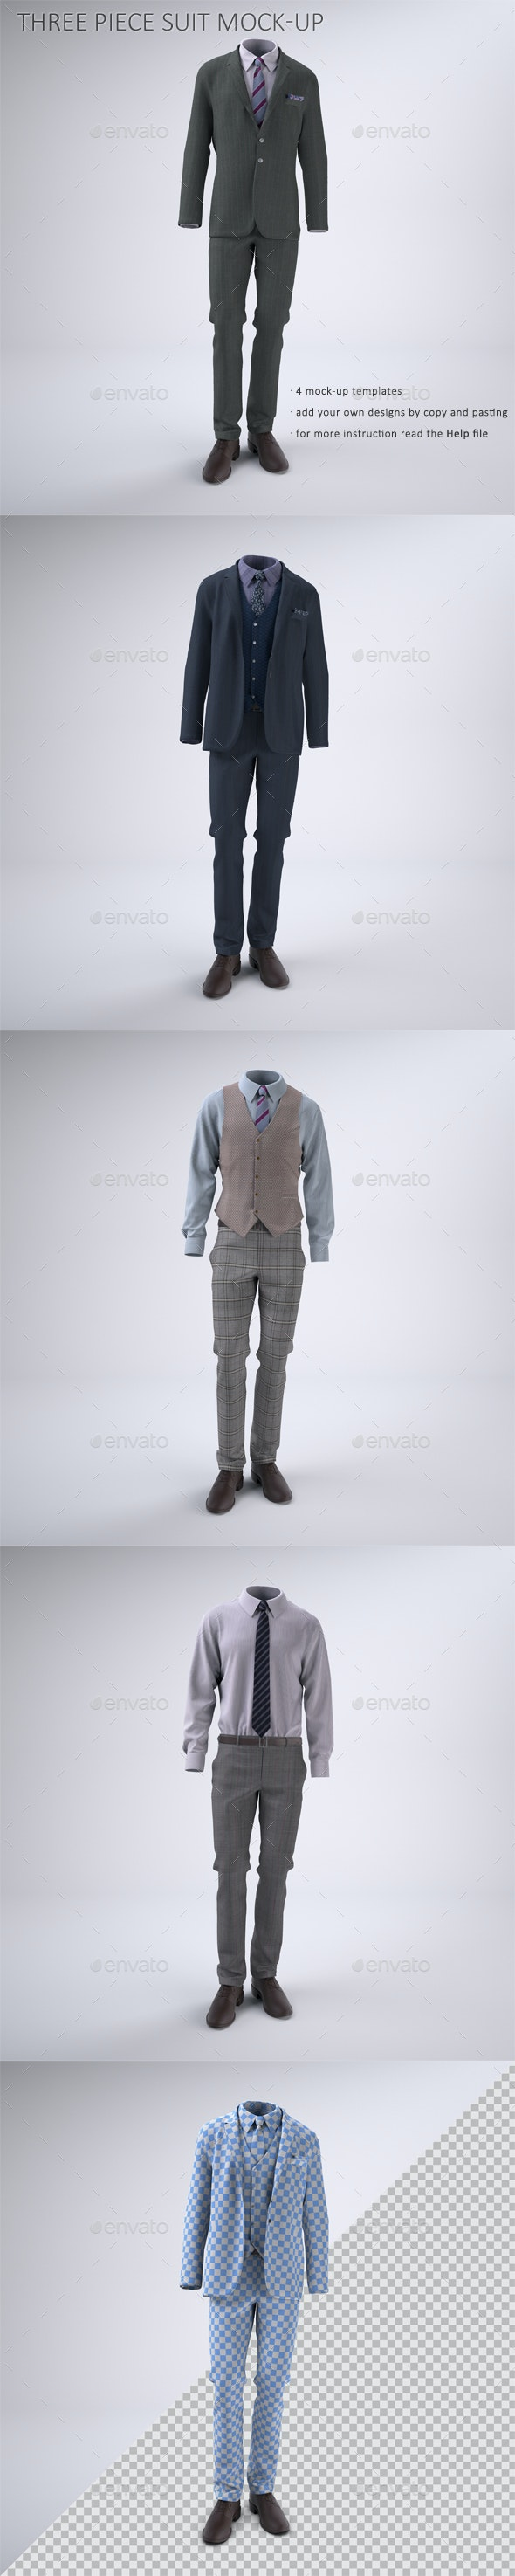 Man's Three Piece Suit With Jacket And Vest Mock-up - Apparel Product Mock-Ups